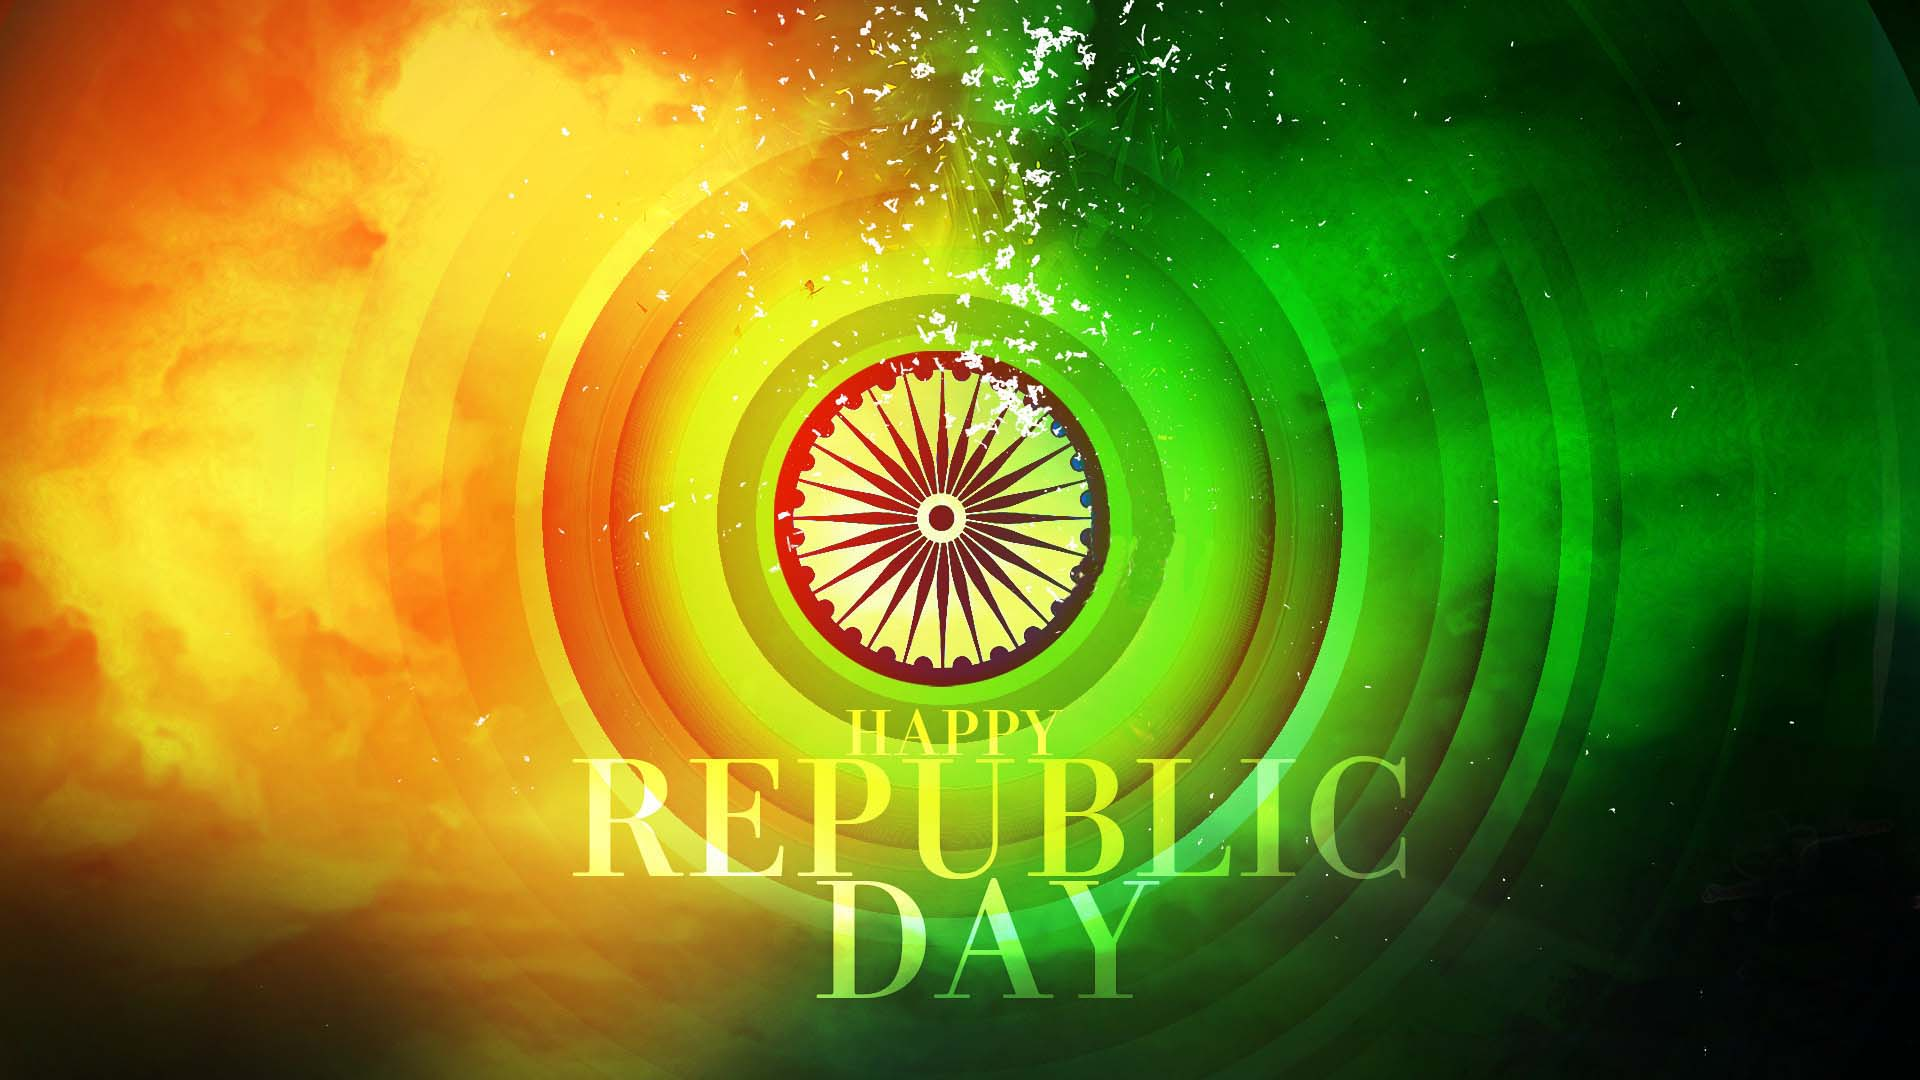 26 Jan Republic Day Images For Whatsapp Dp Profile Wallpapers